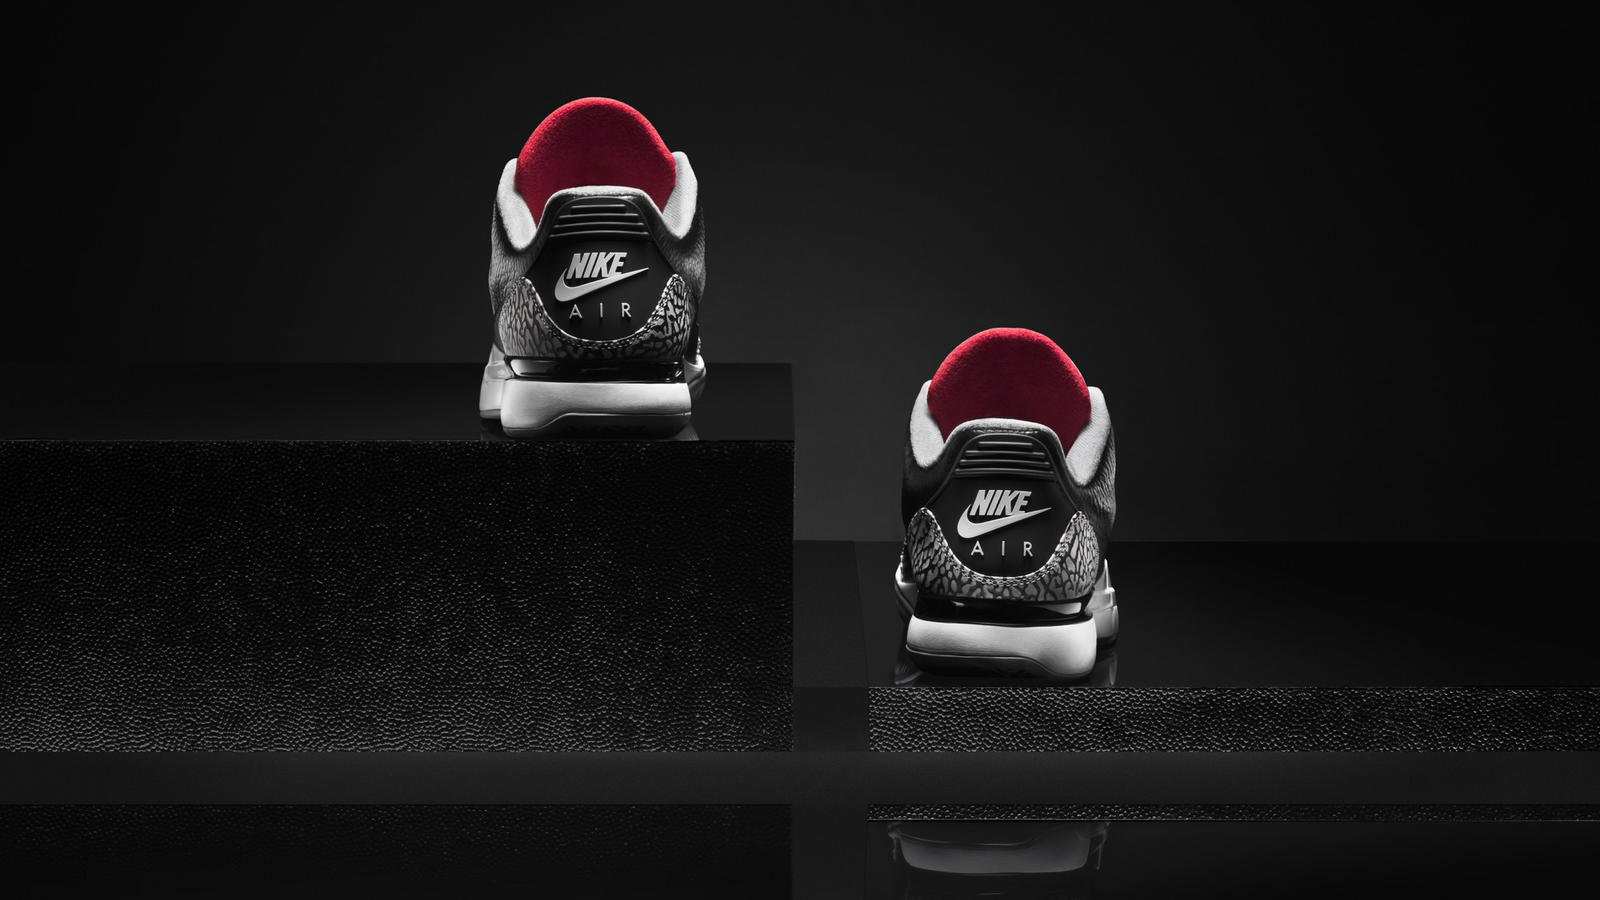 Back in Black: Nike Court Presents Latest Zoom Vapor AJ3 by